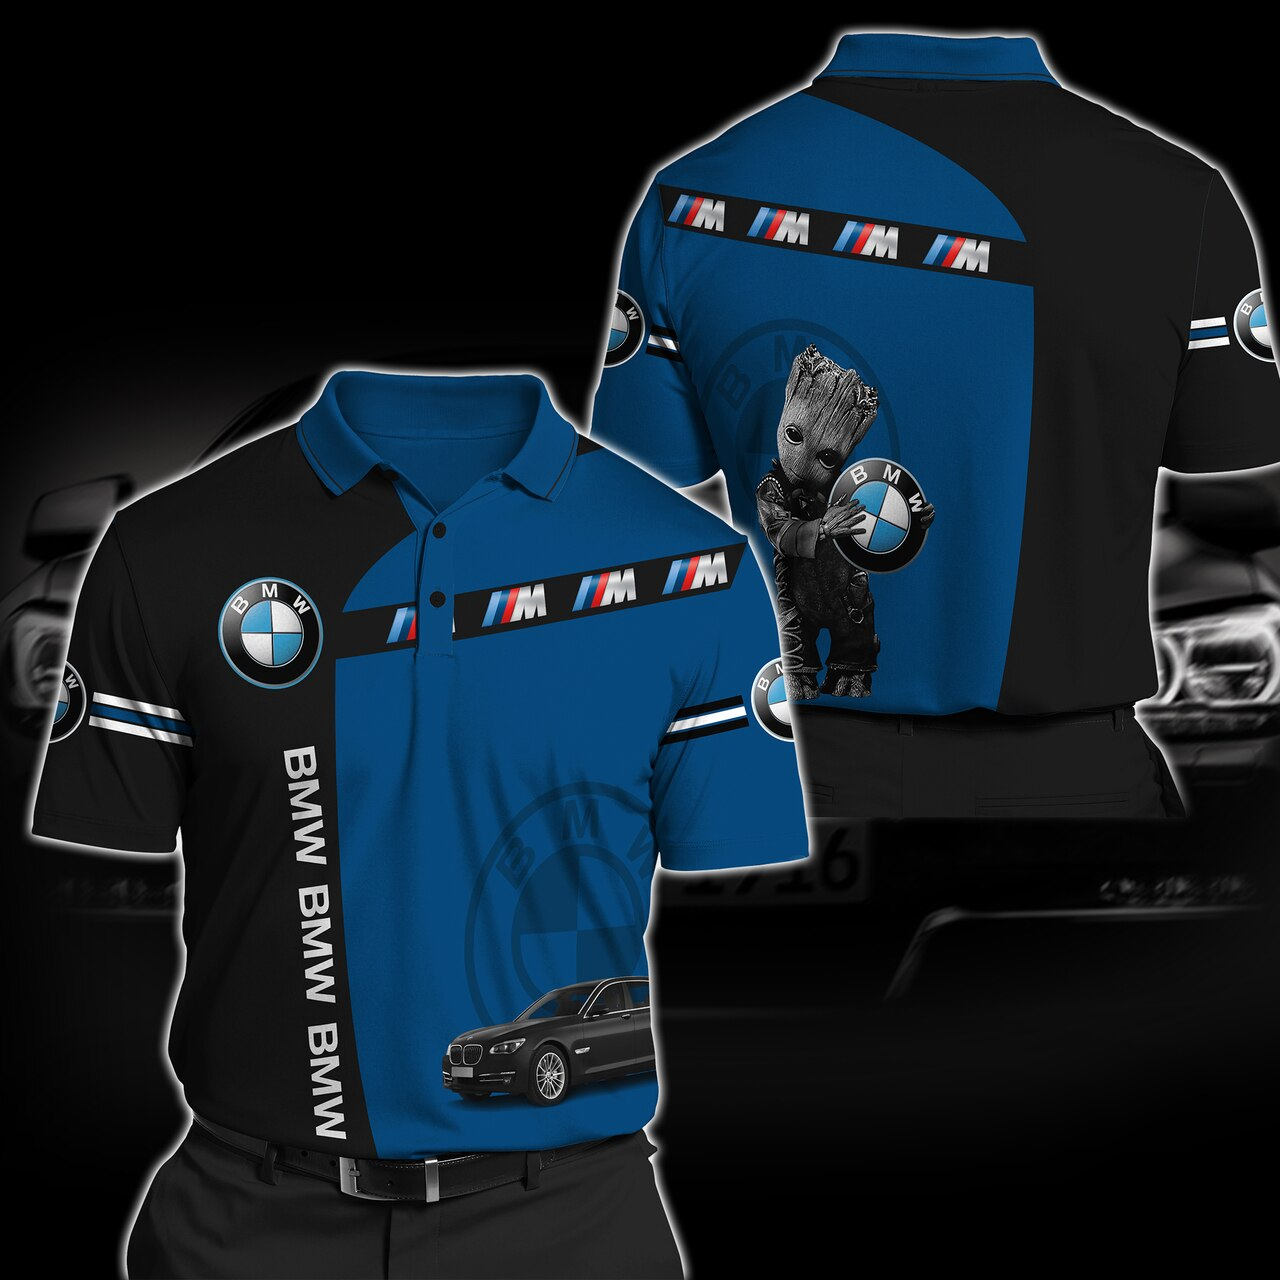 Baby groot hold bmw logo full printing polo